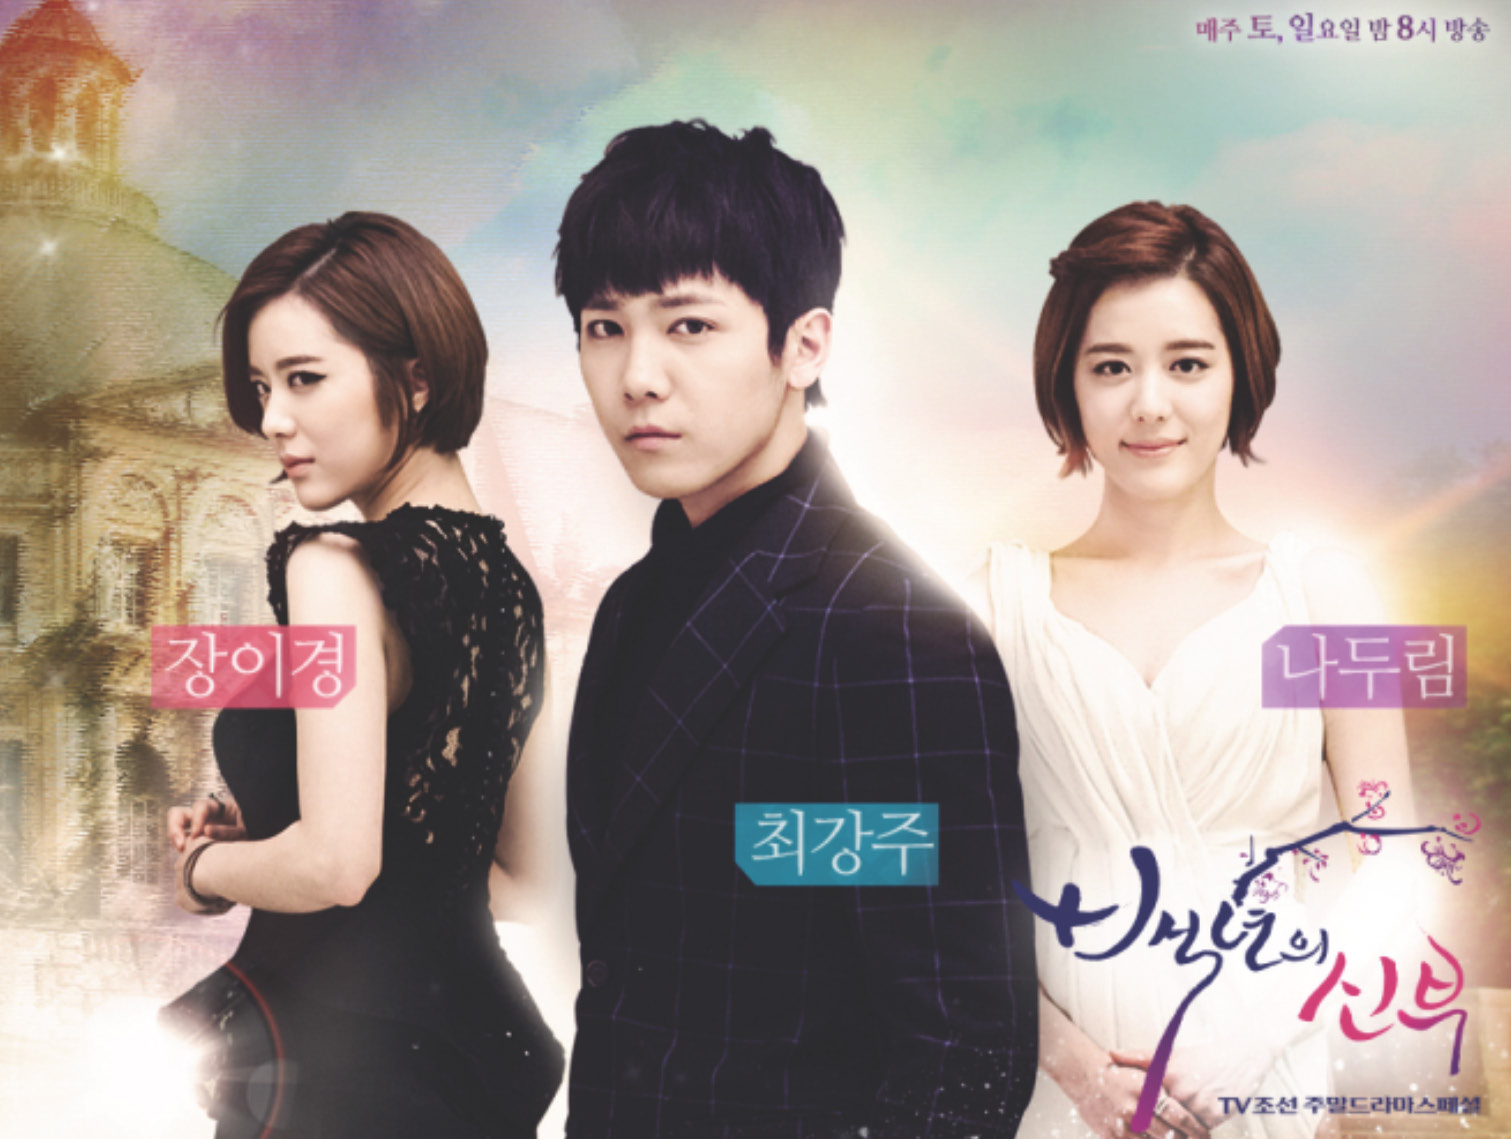 Poster for Korean Drama Bride of the Century showing Lee Hong Gi and Yang Jin Sung.